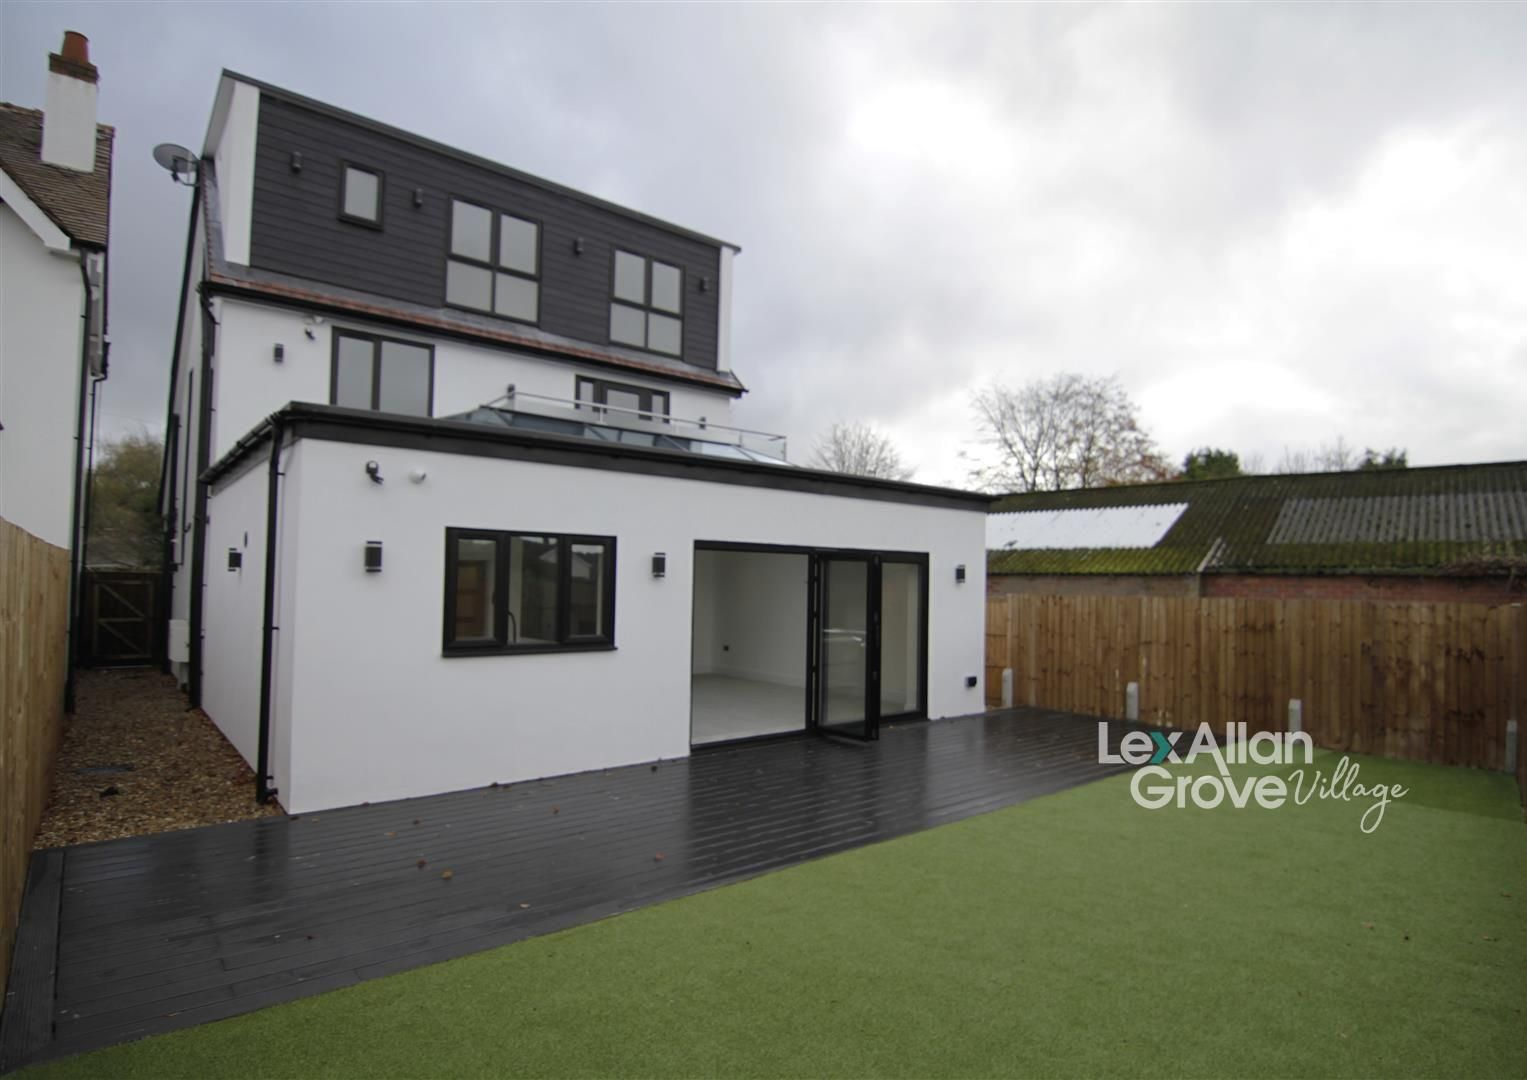 5 bed detached for sale in Hagley, DY9